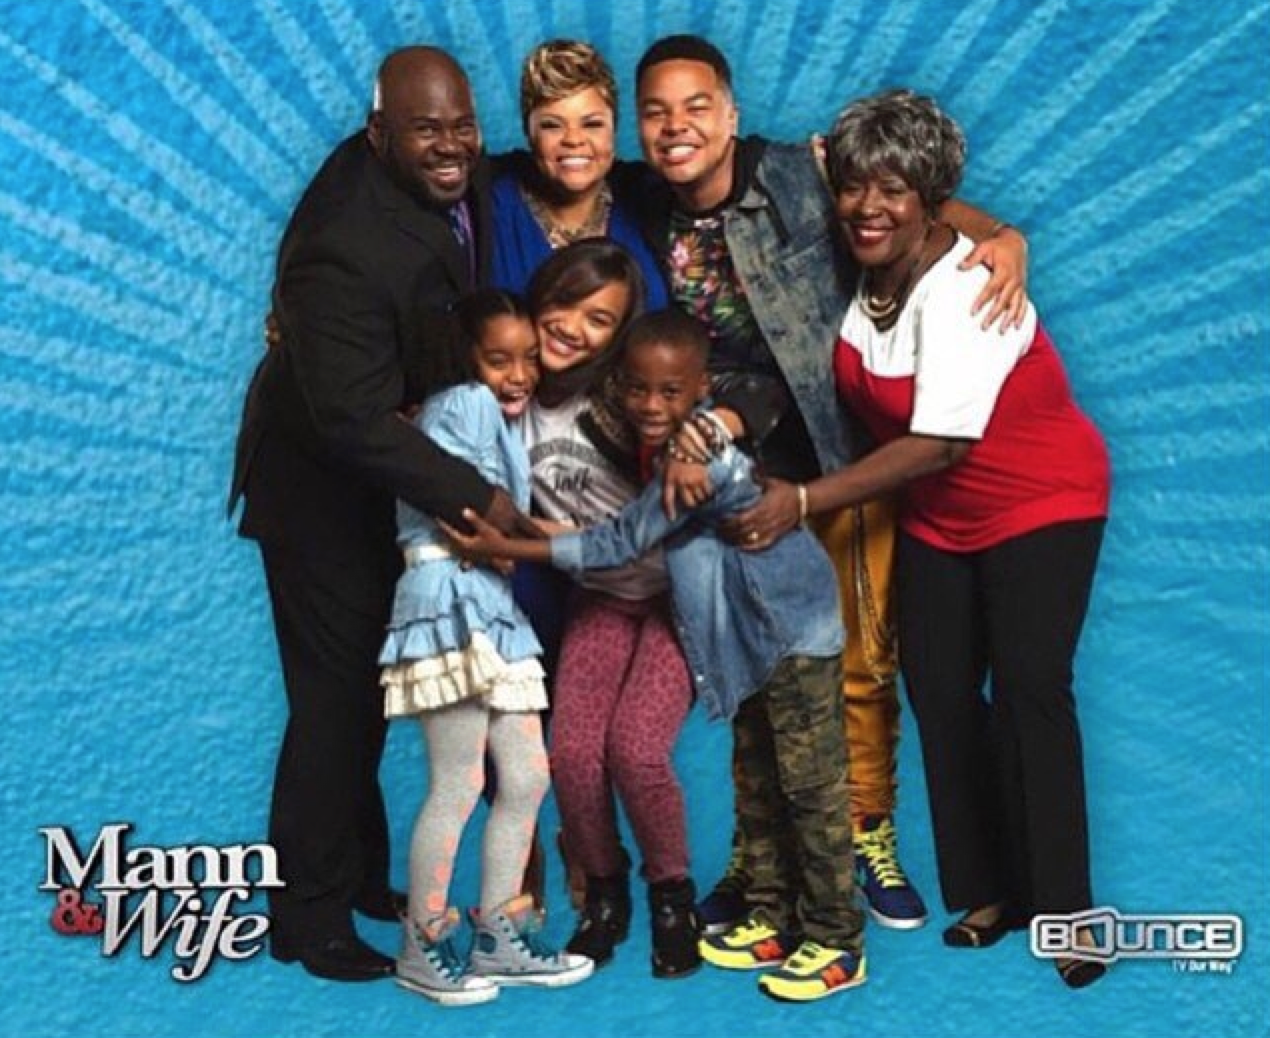 mann & wife-bounce tv